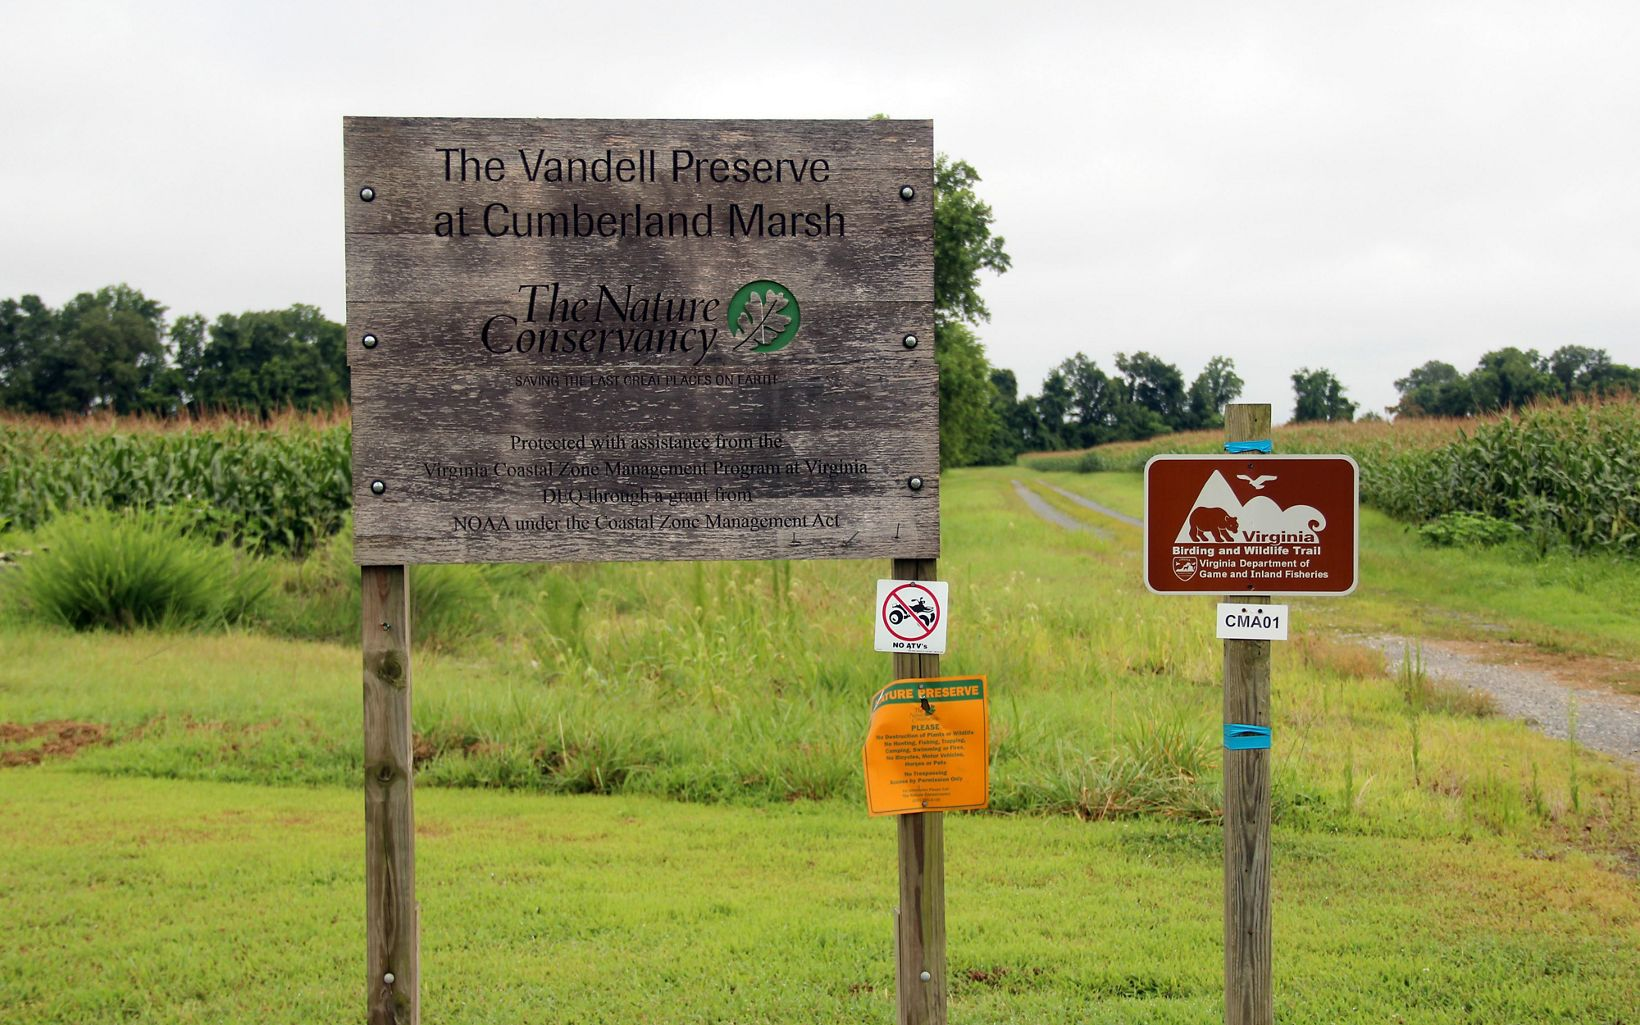 A large wooden sign welcomes visitors to Cumberland Marsh. A dirt lane curves off the right past a field of tall corn.